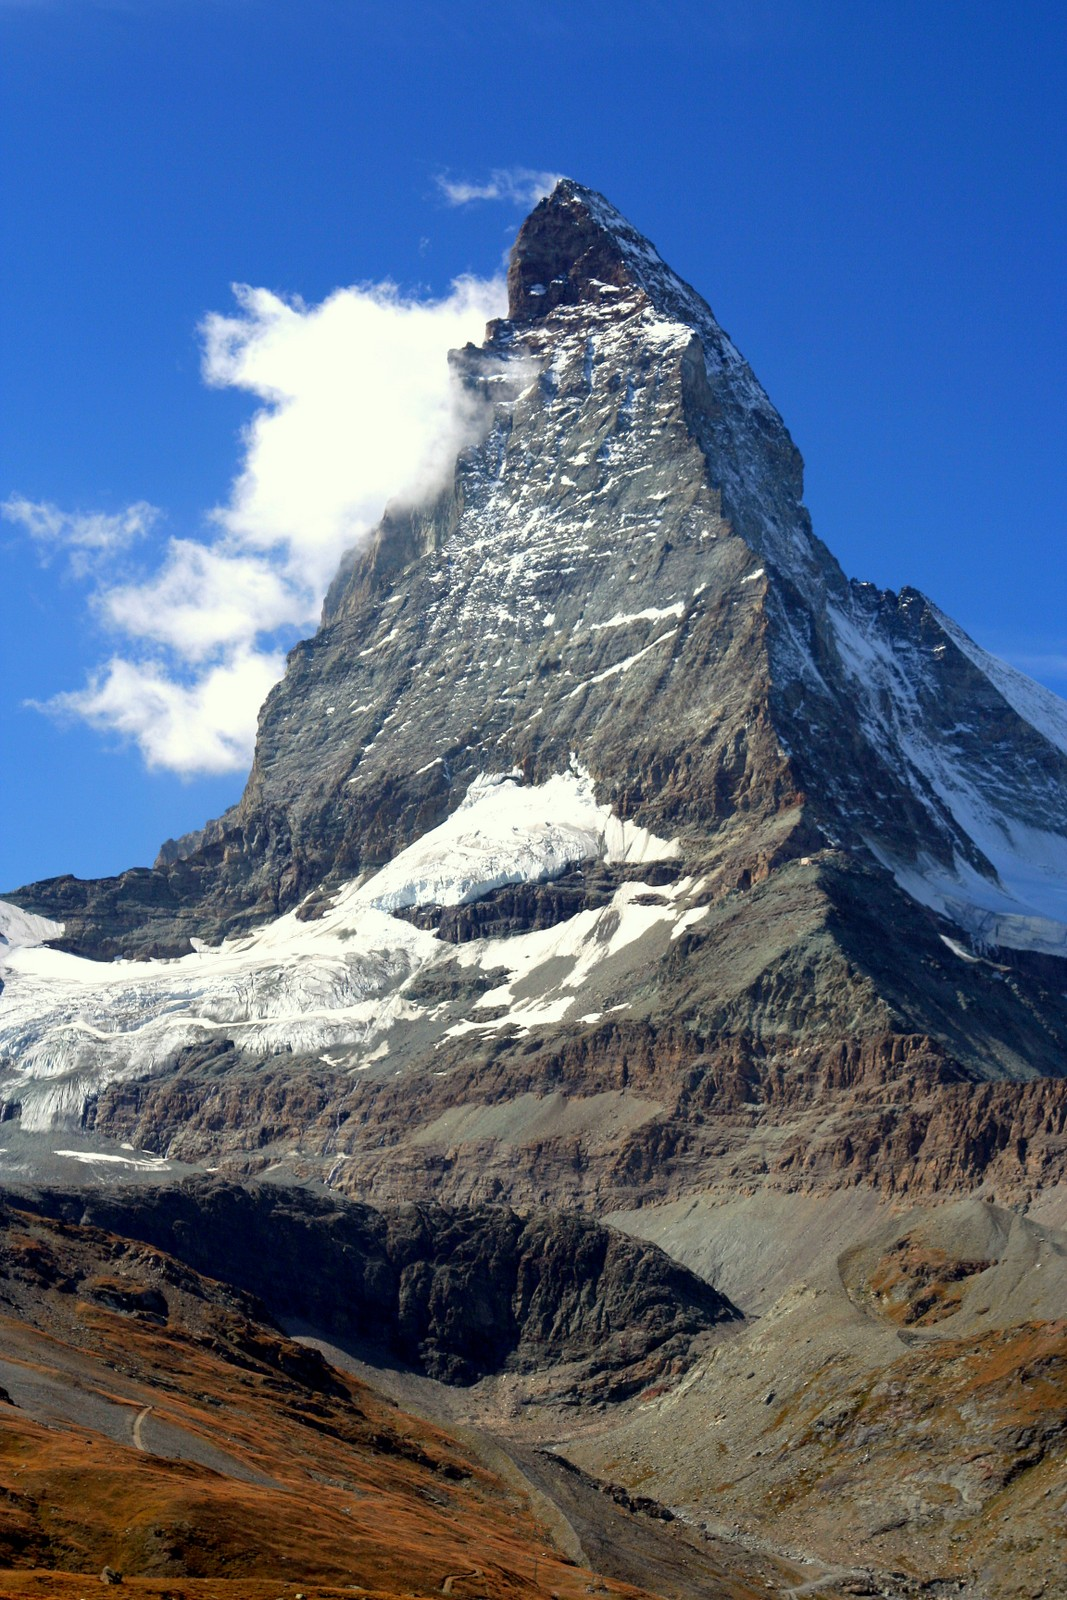 The Matterhorn, seen from Zermatt, Switzerland